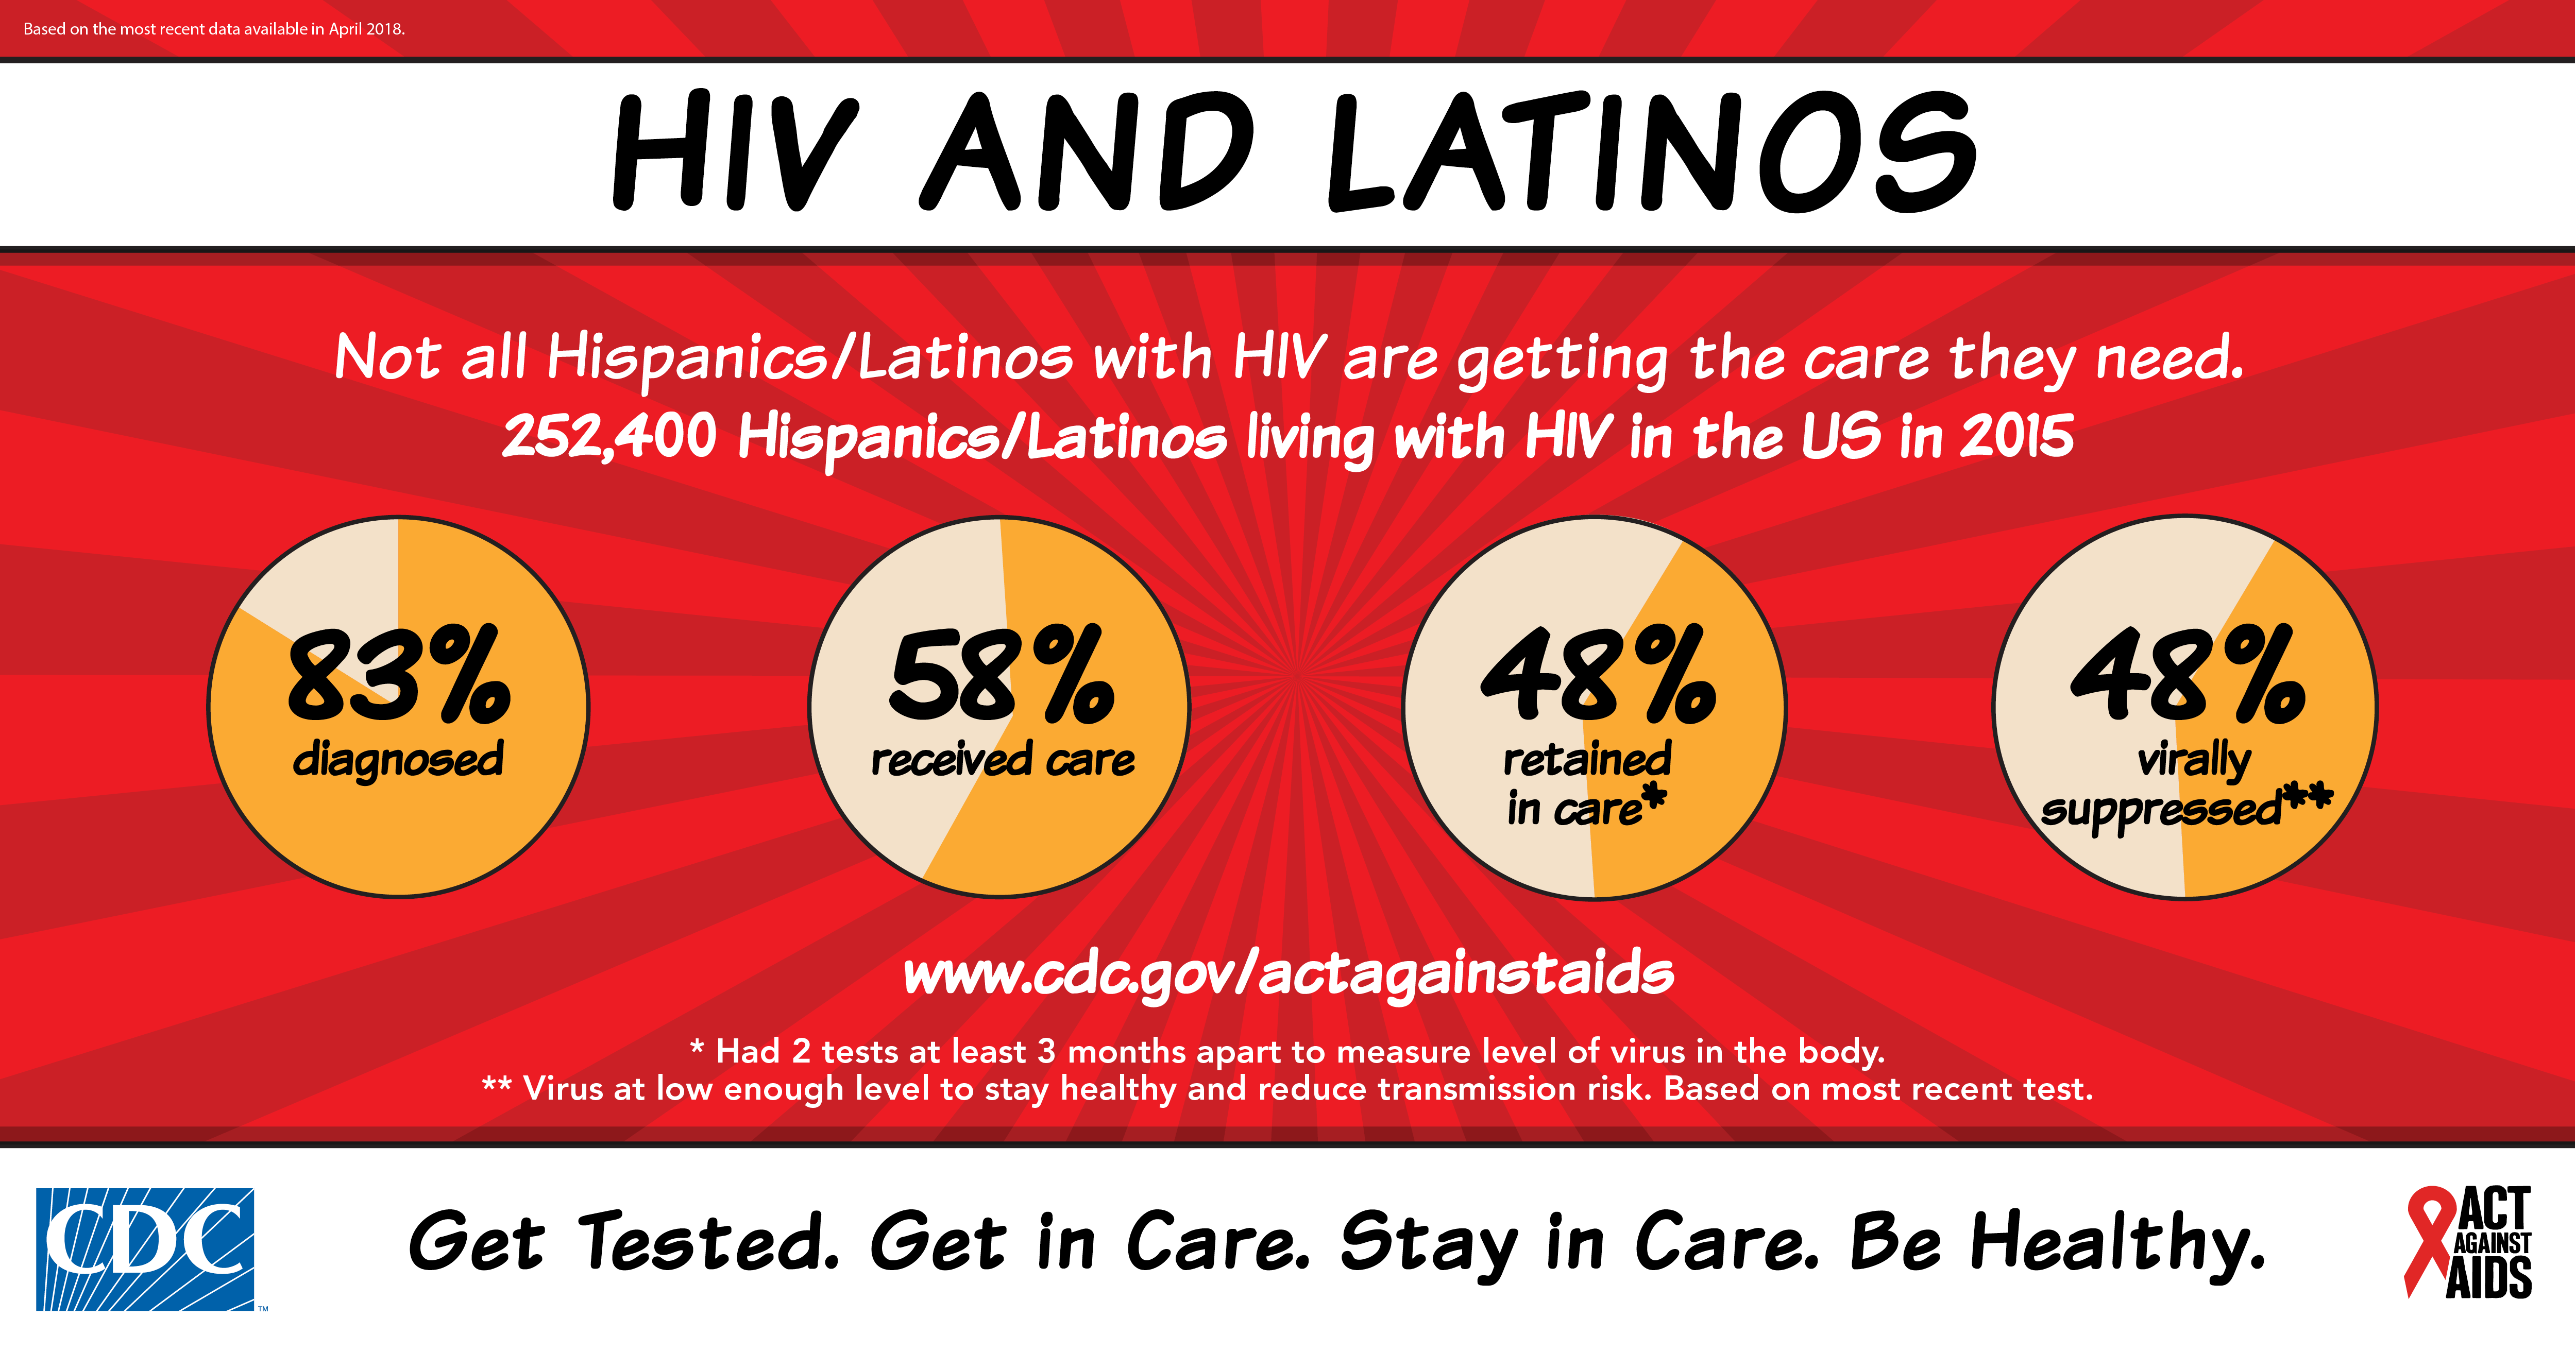 HIV and Latinos